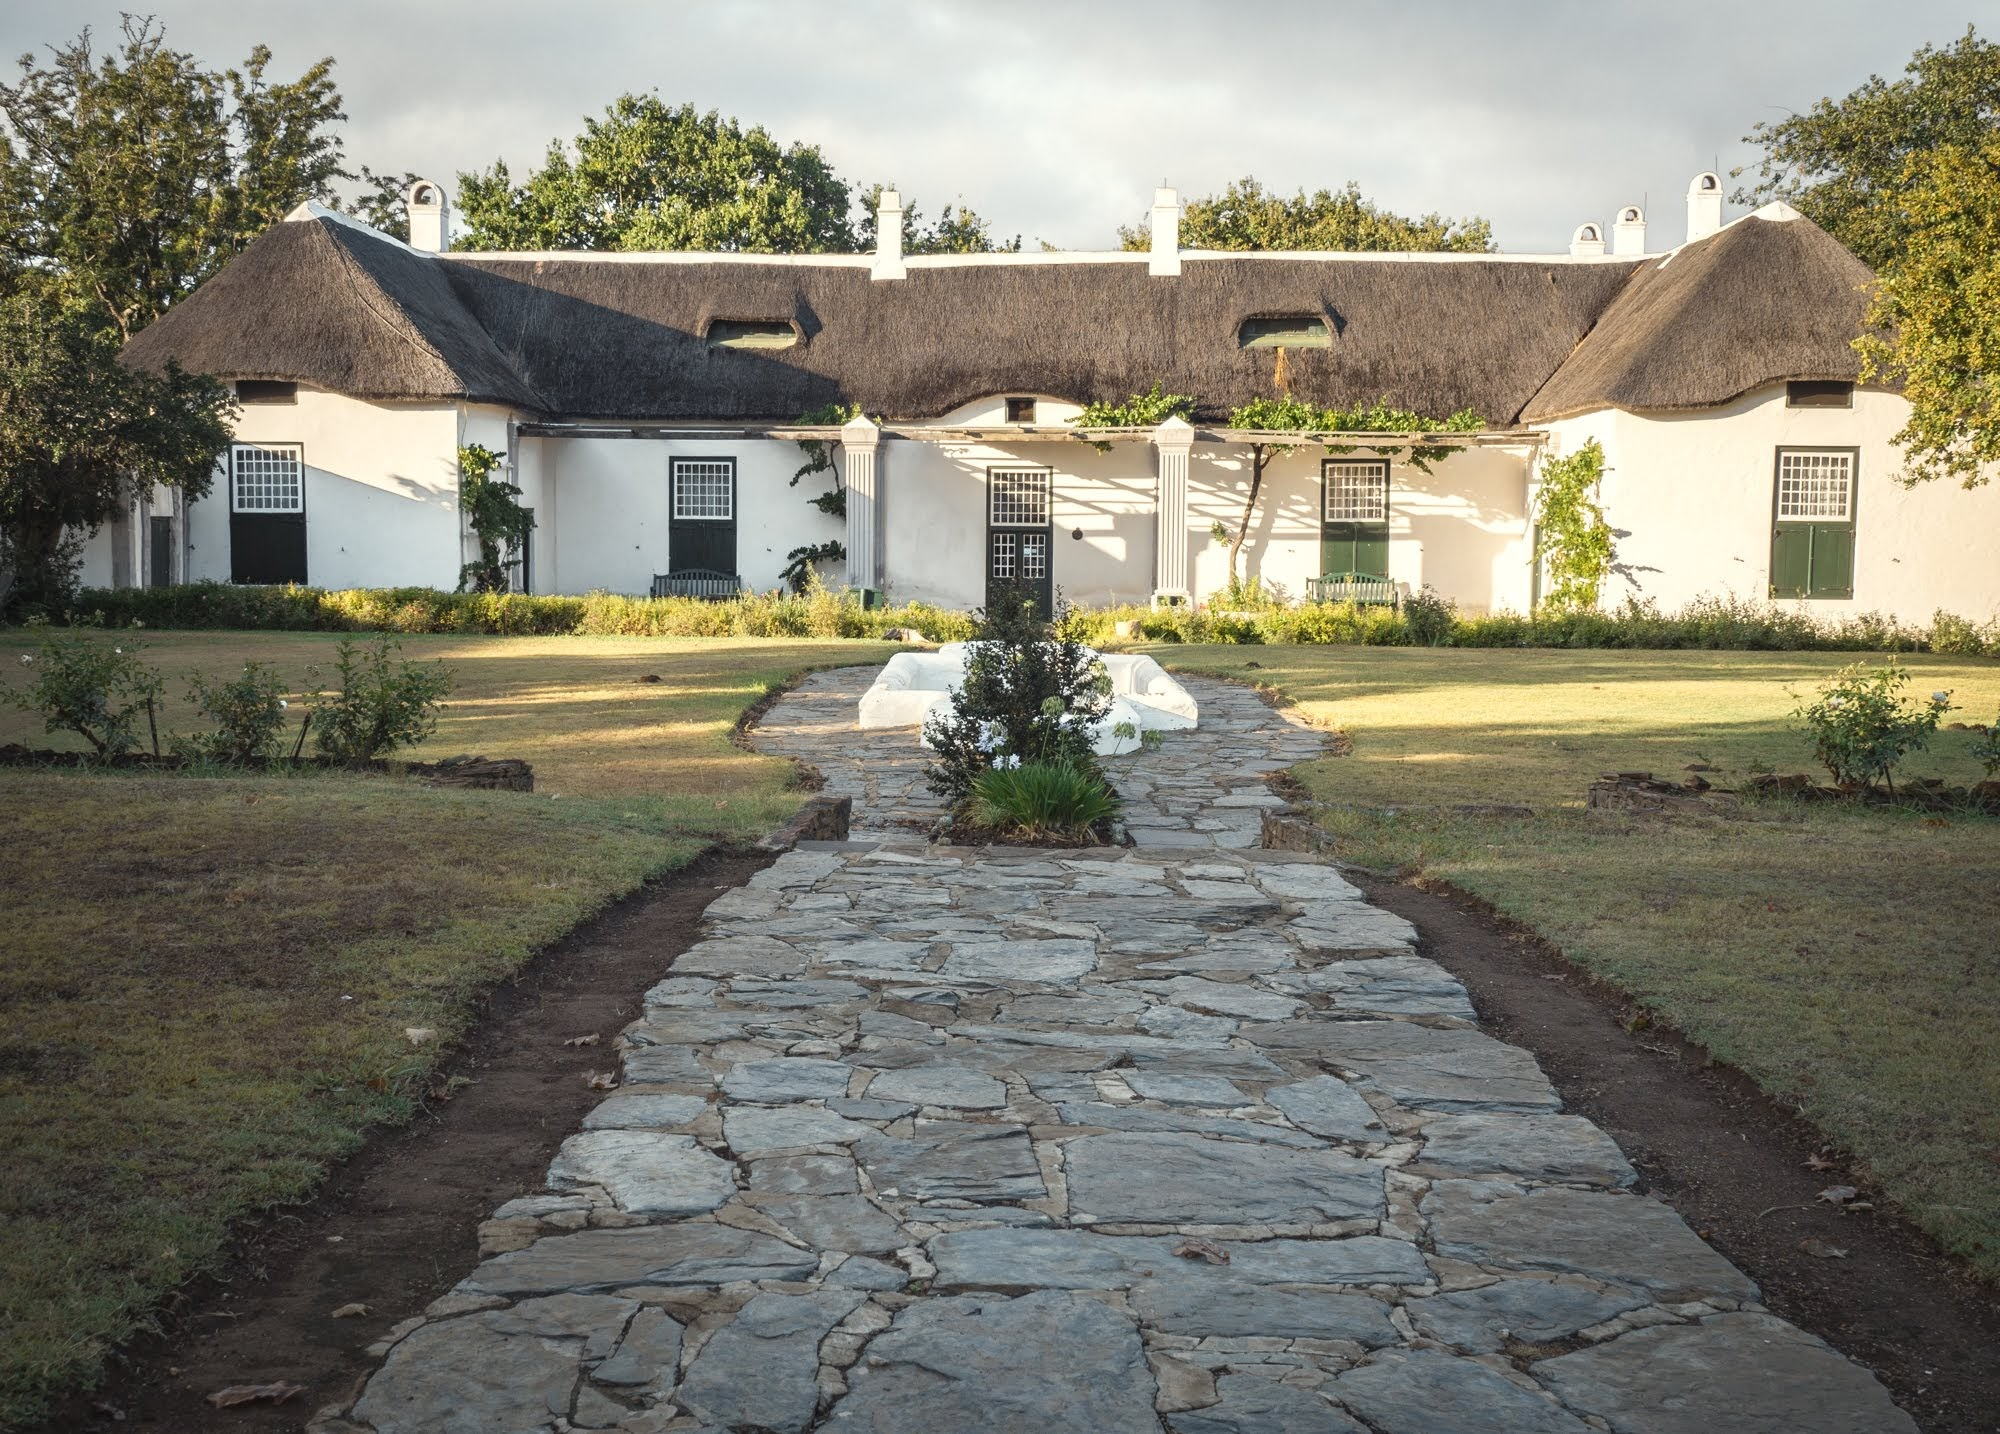 Swellendam has a nice collection of Cape Dutch architecture if you're into that kind of things.